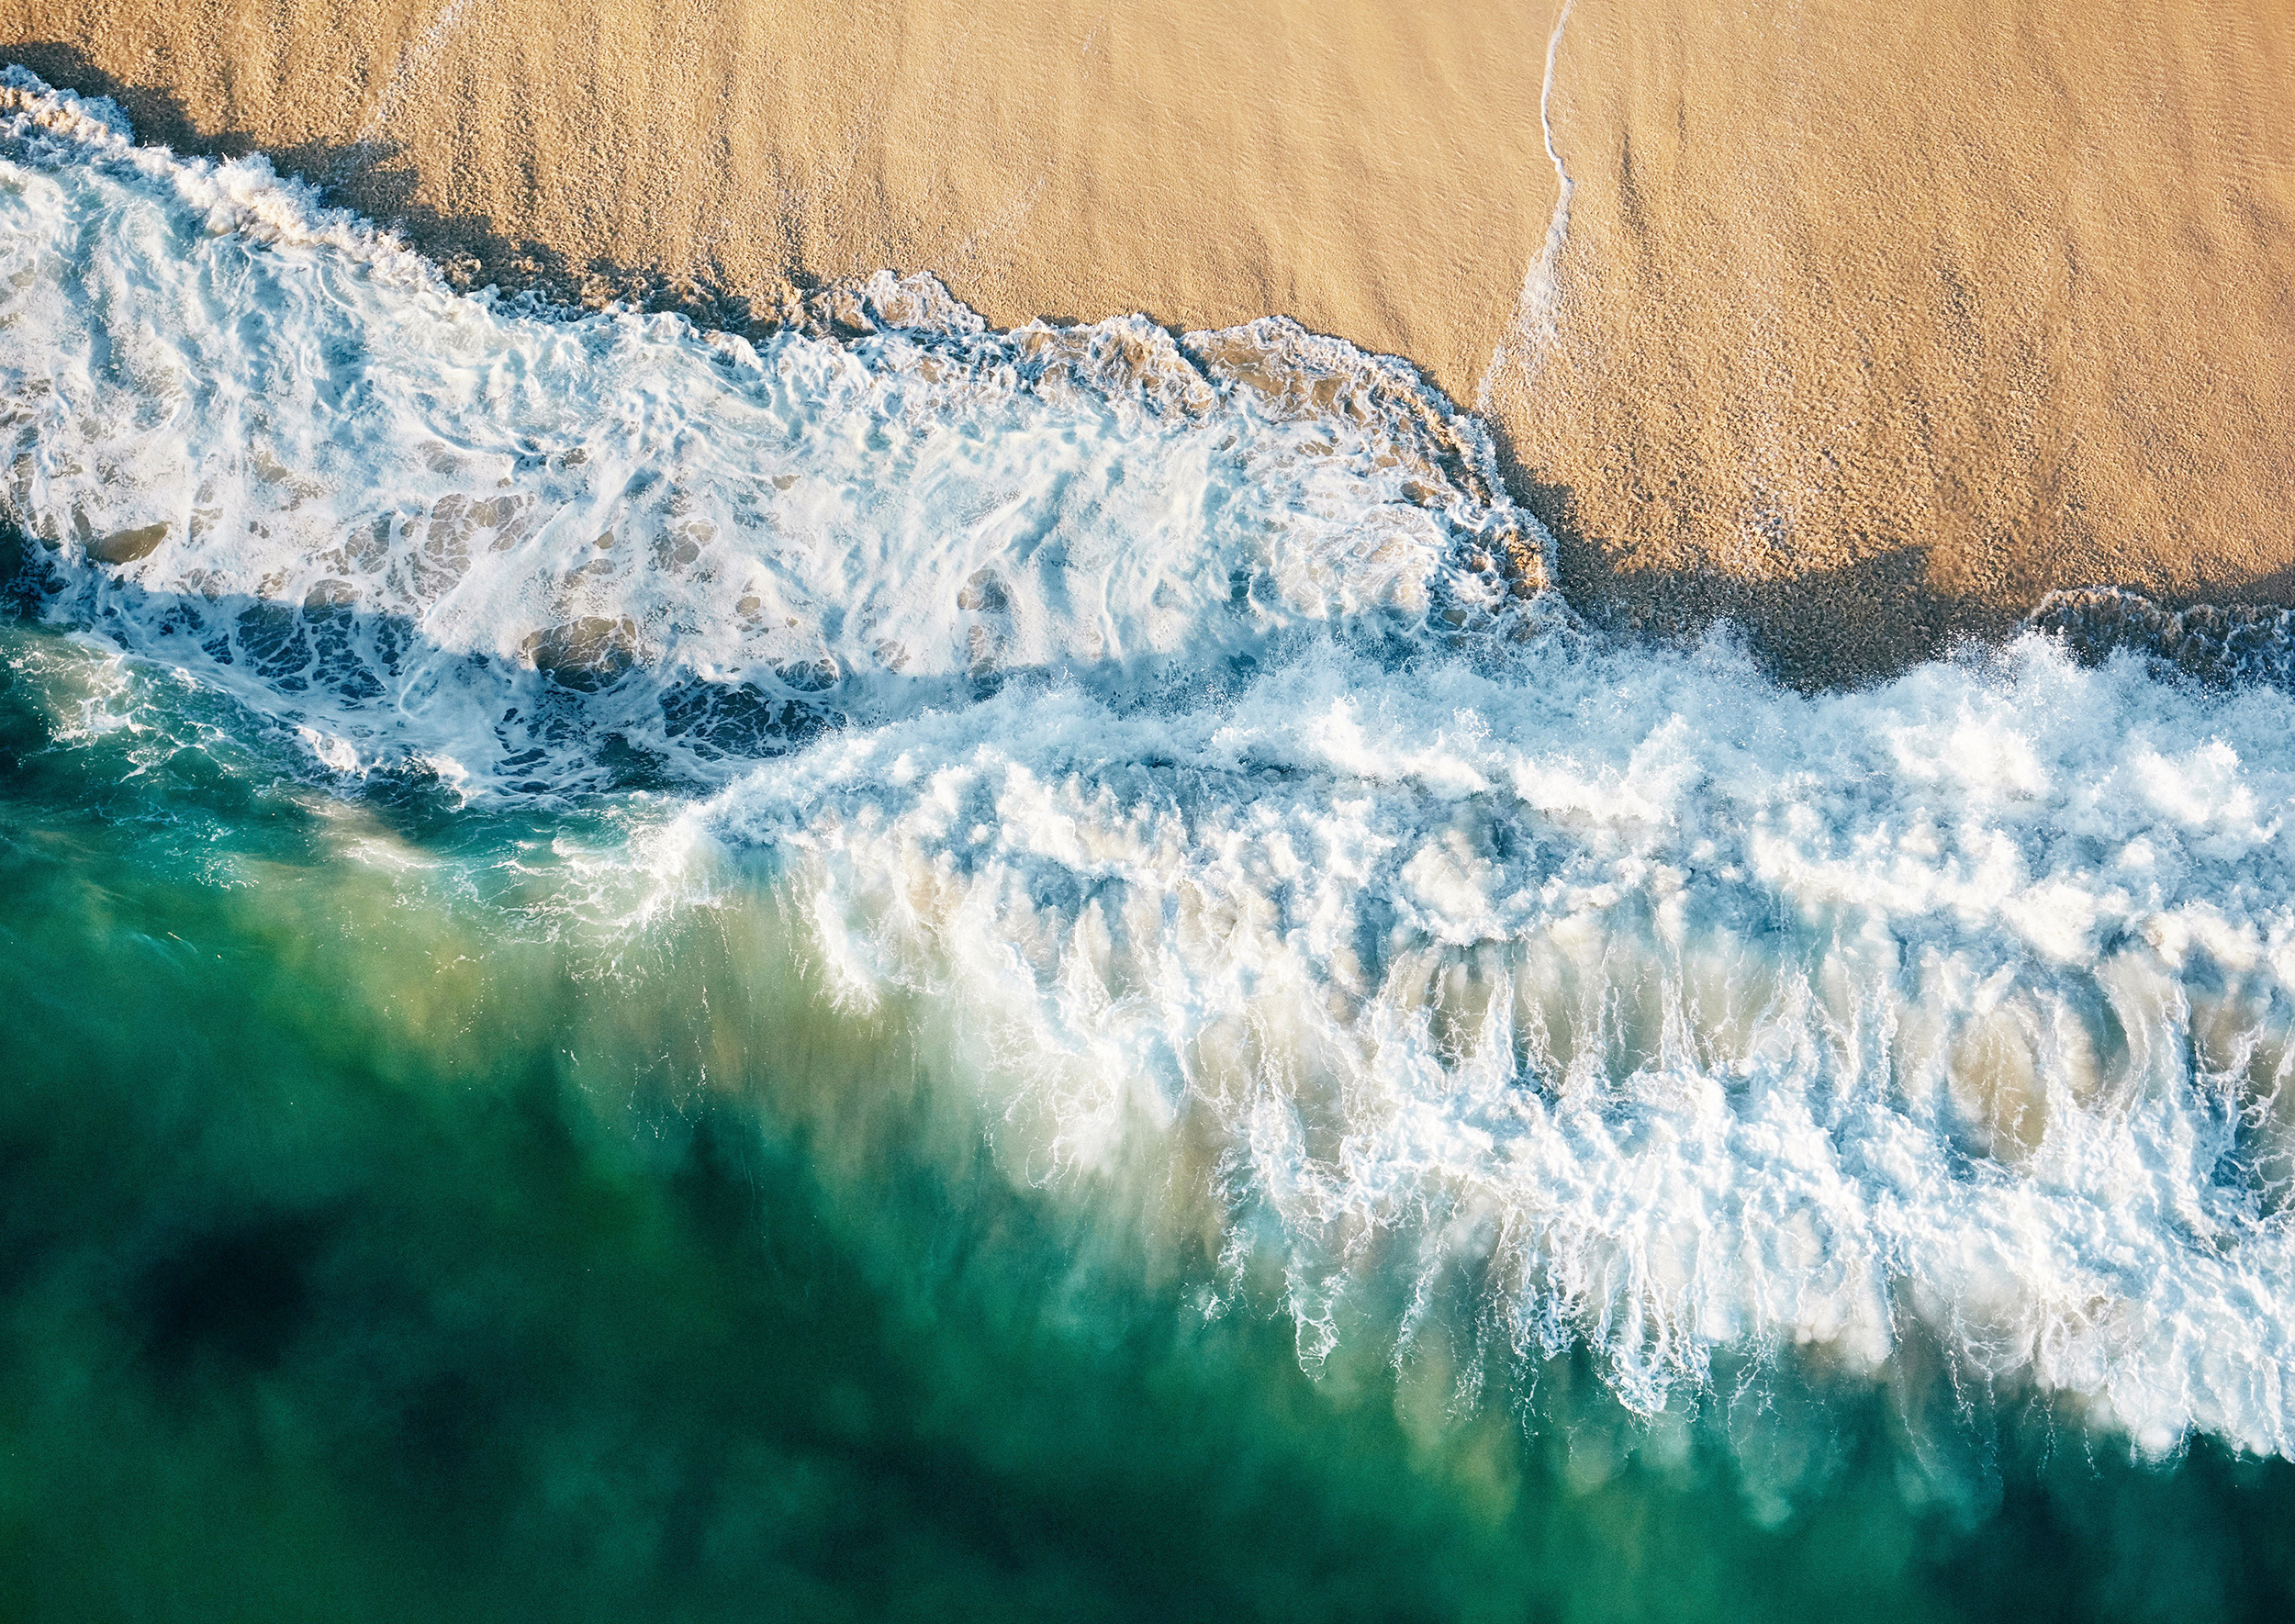 Baja_Wave_Aerial_H2_NickSimonite